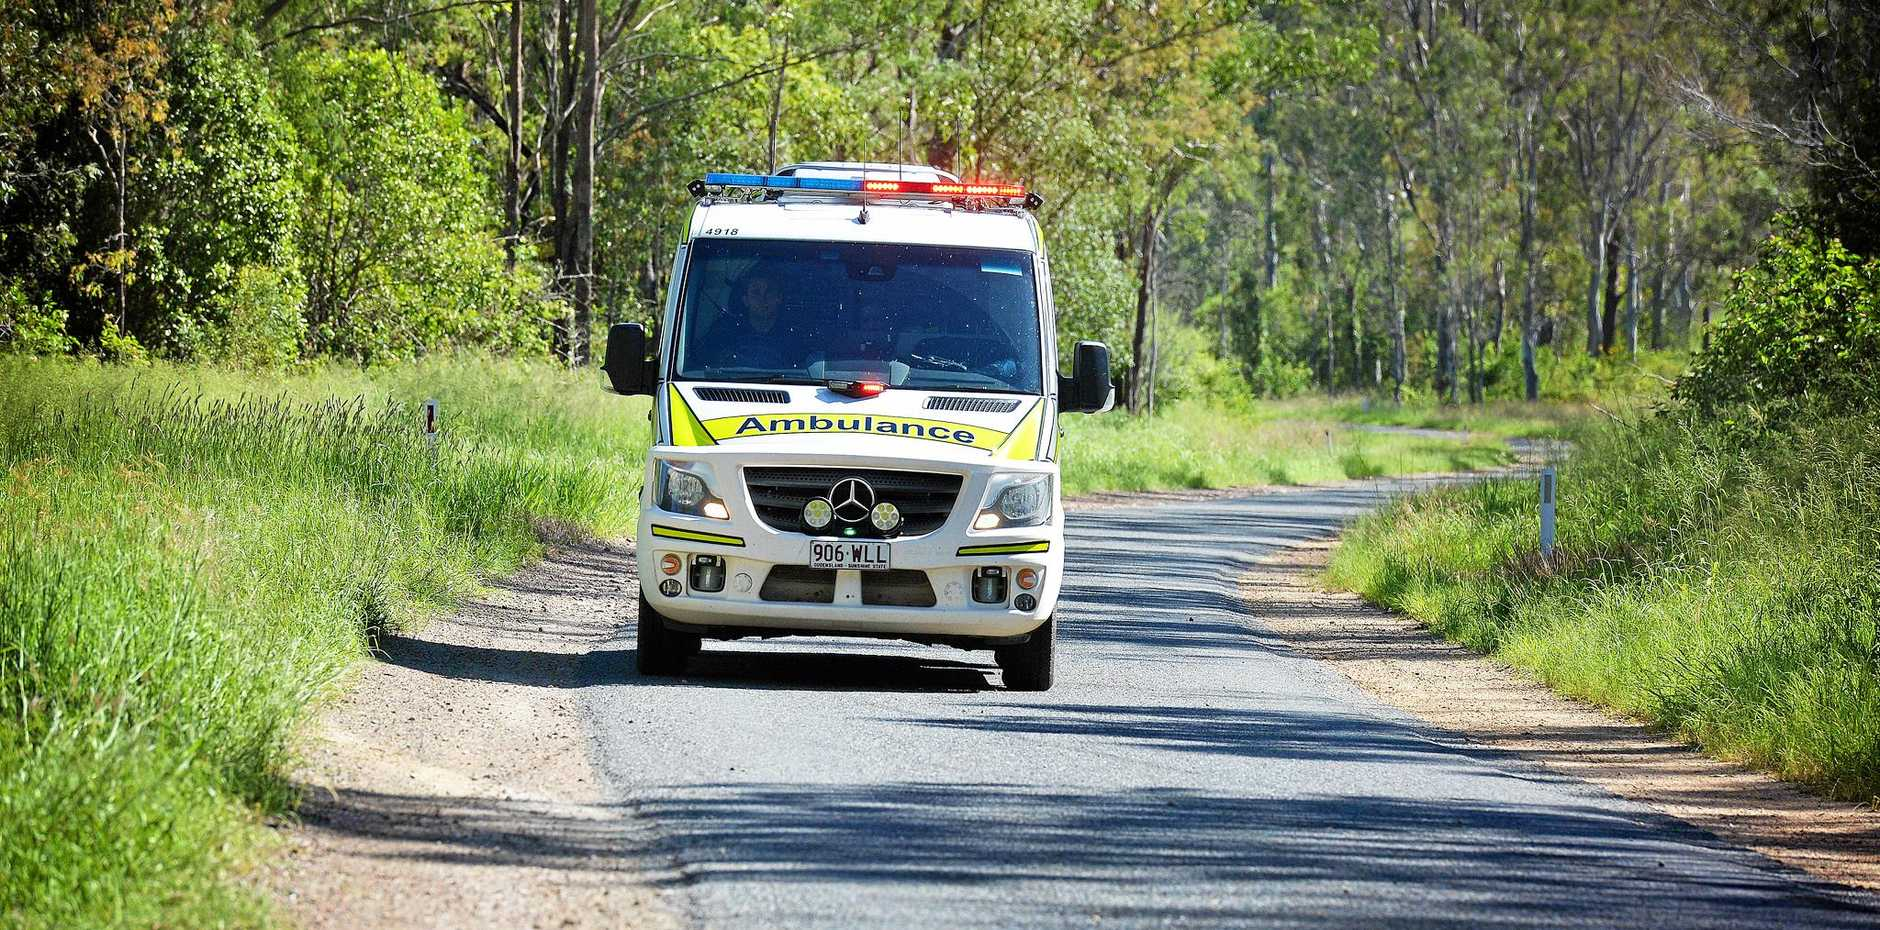 Queensland Ambulance Service attended a serious crash at Kybong.